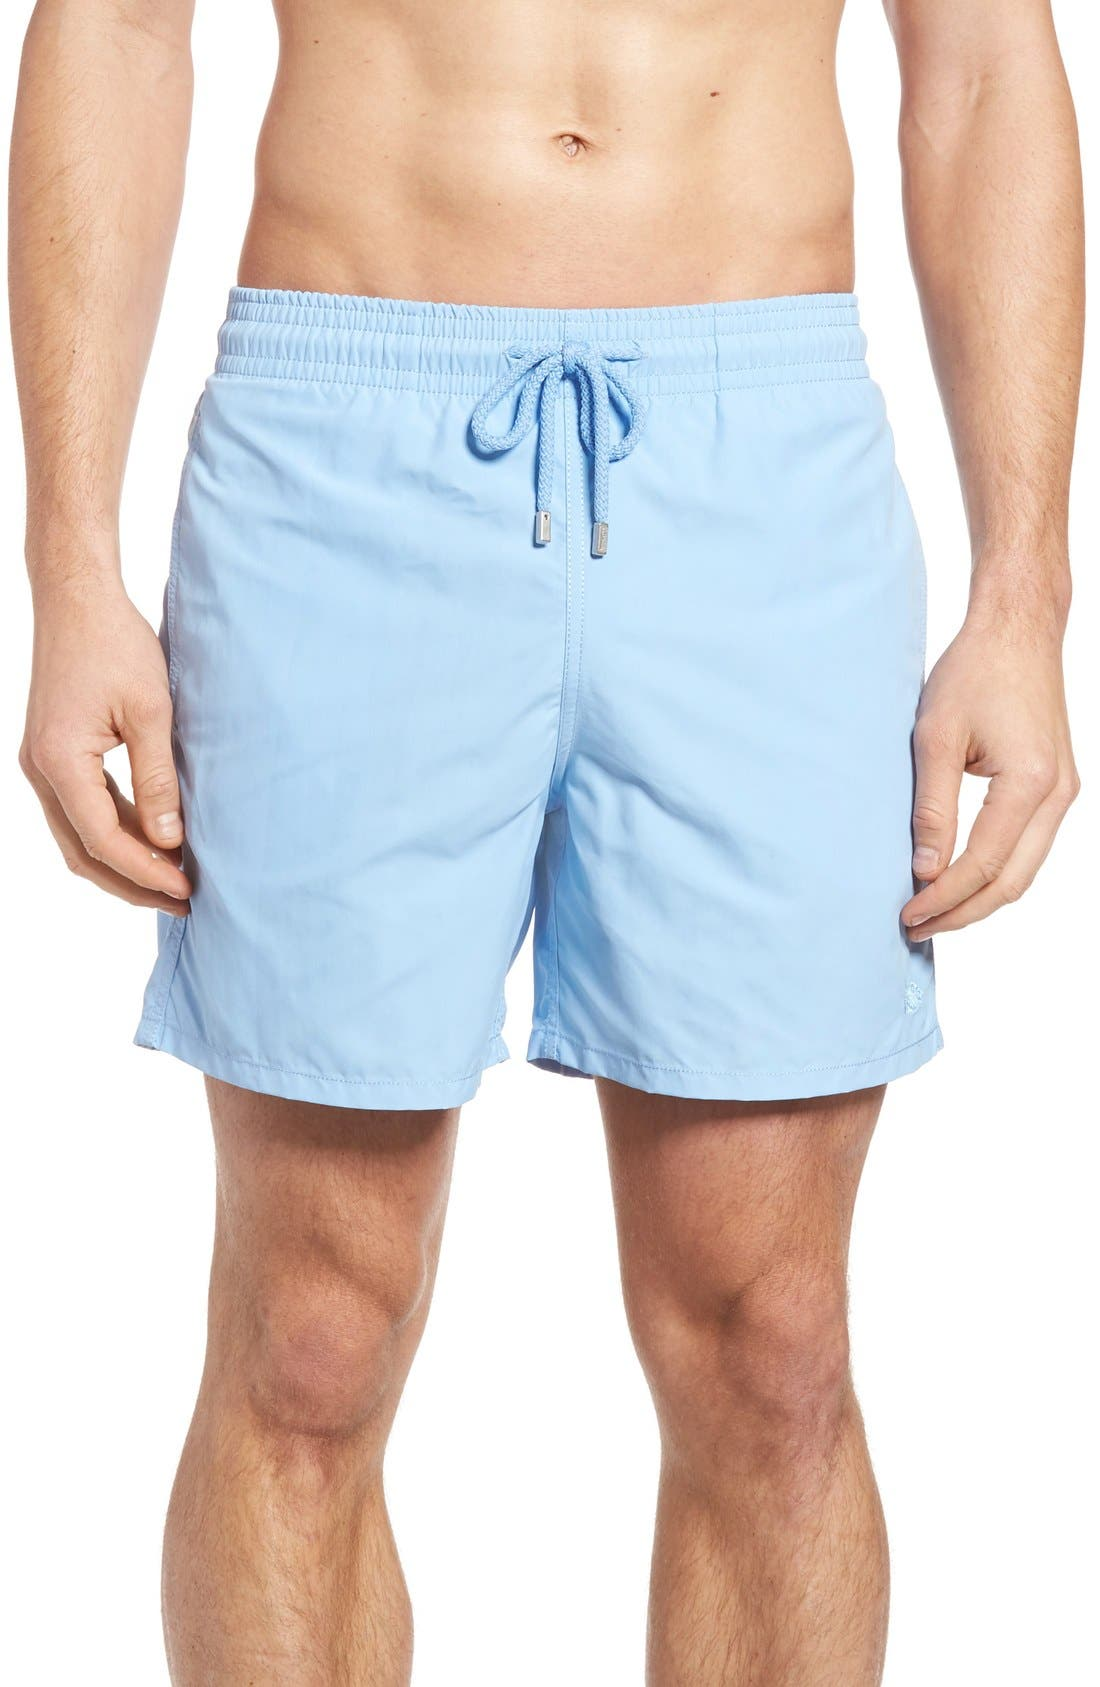 Coral Water Reactive Swim Trunks,                         Main,                         color, Sky Blue